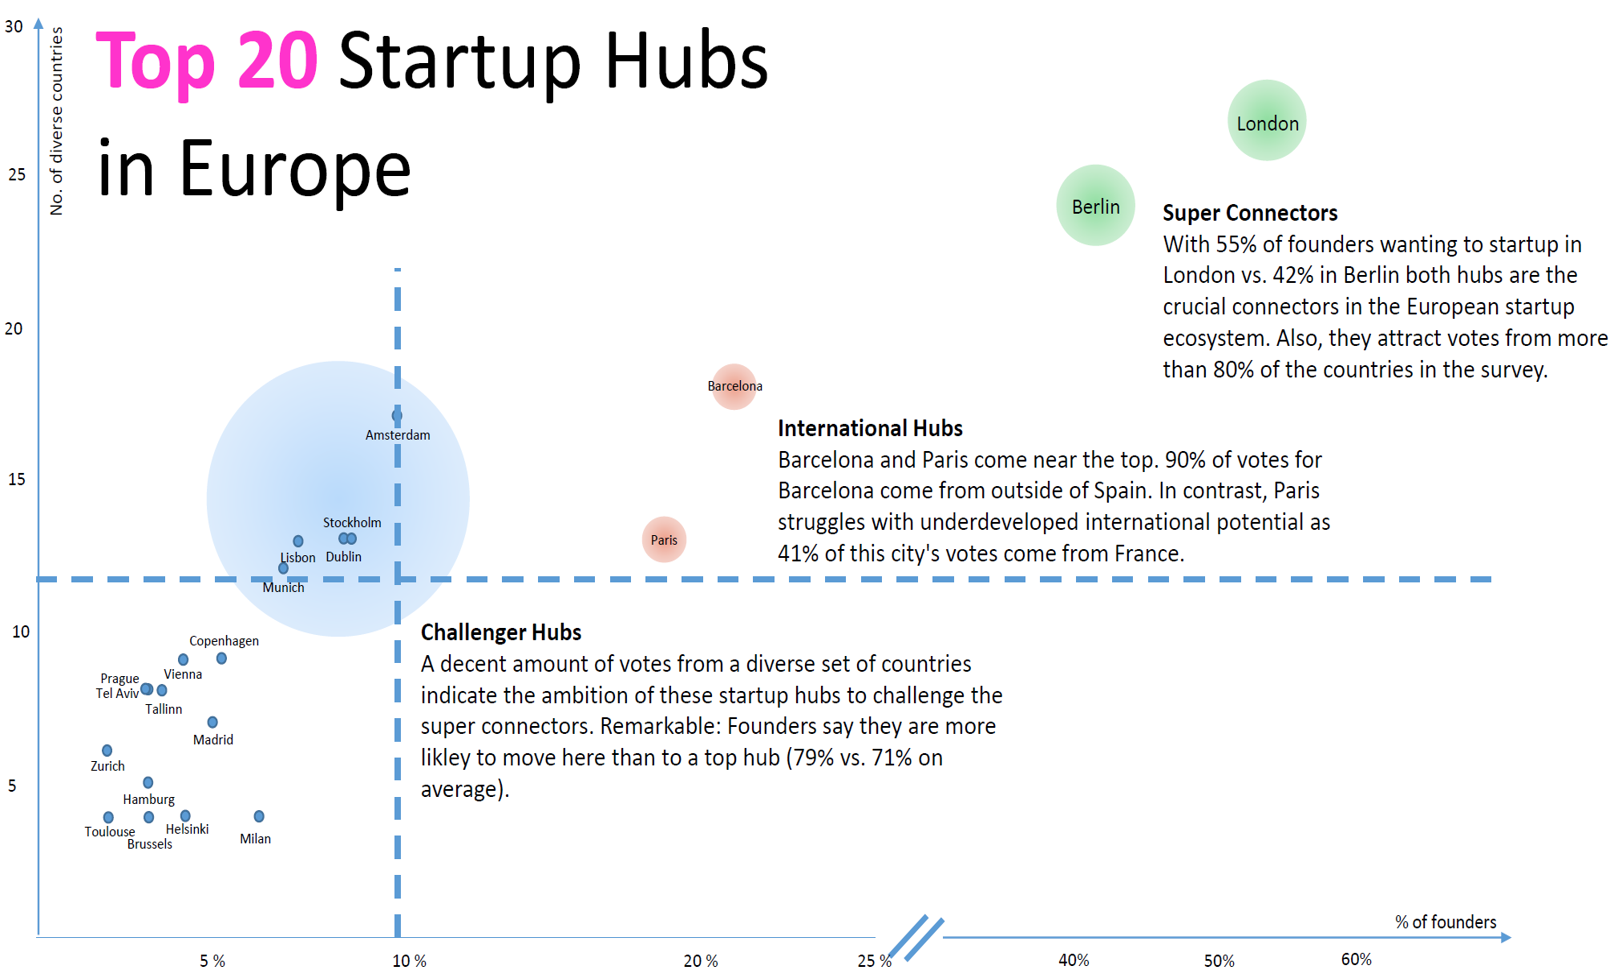 Top 20 Startup Hubs according to founders - Startup Heatmap Europe 2017